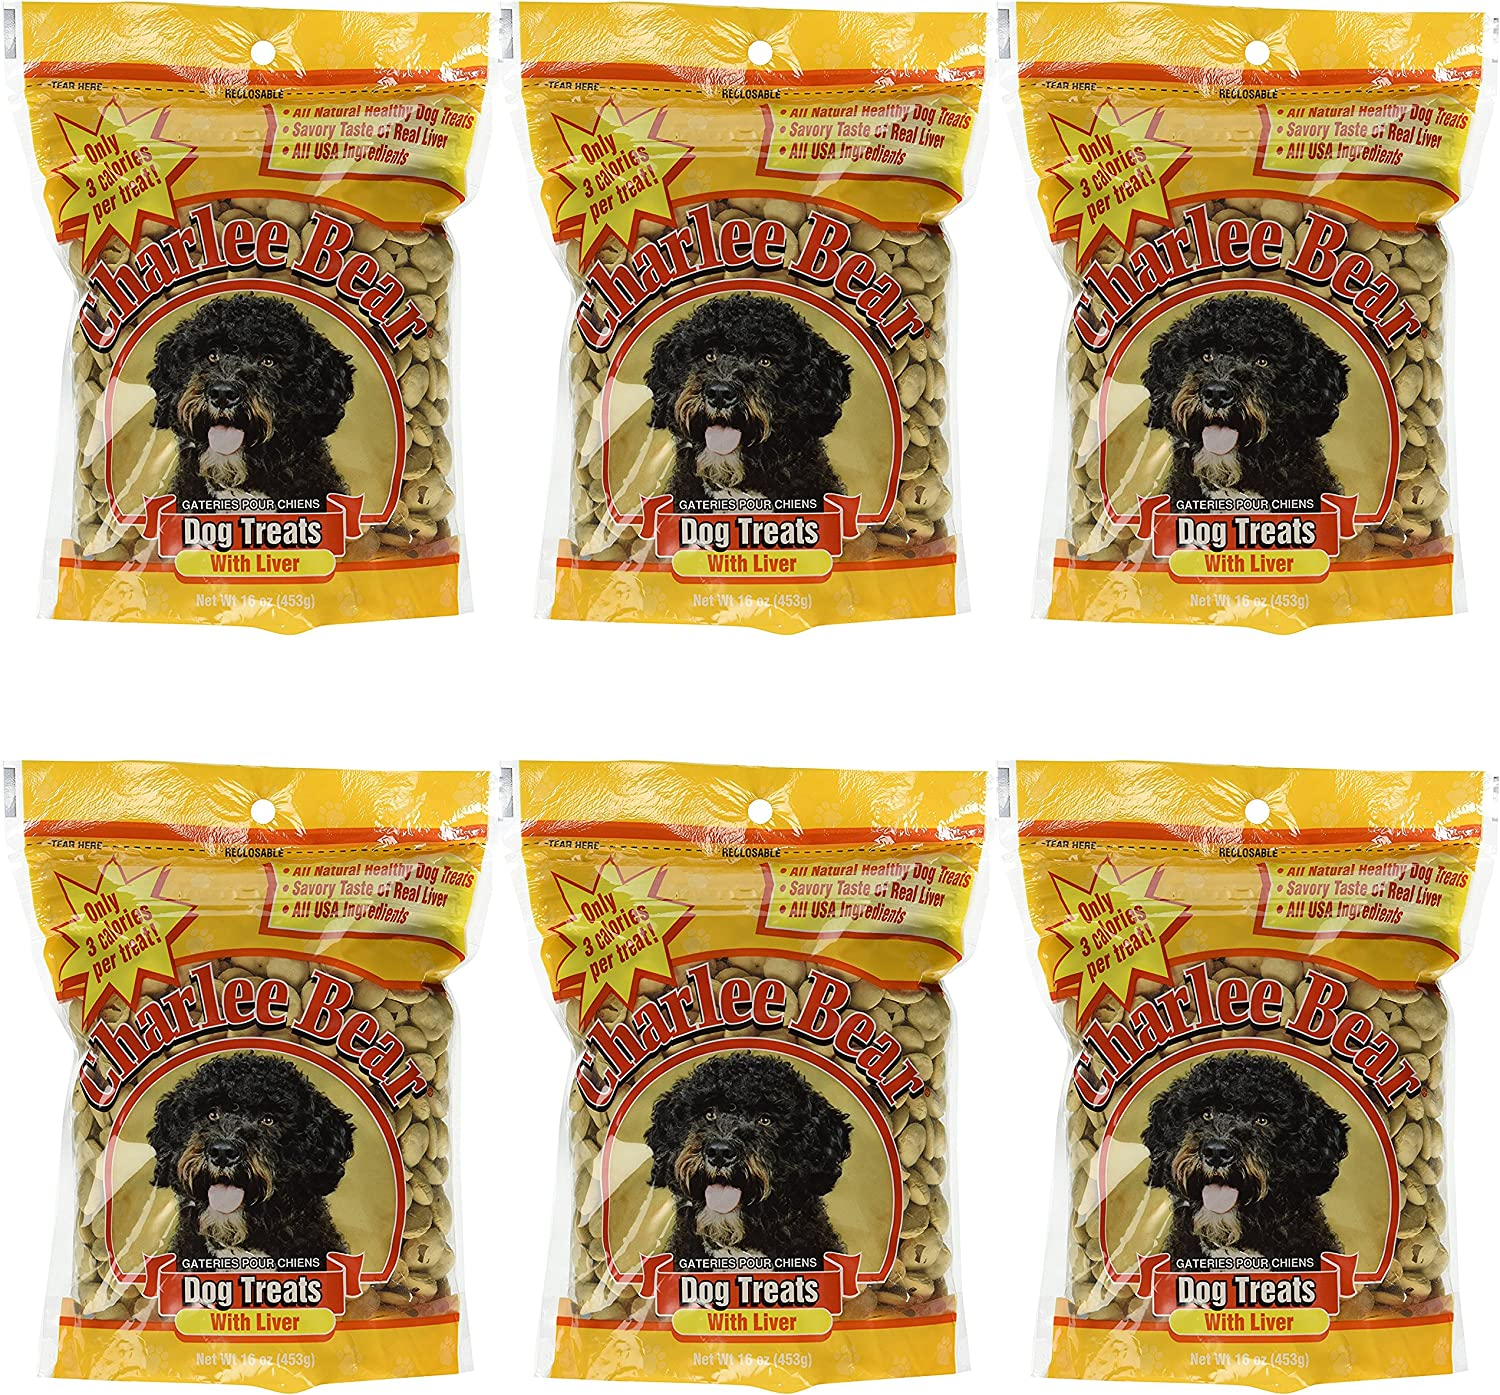 Charlee Bear 840235167945 Dog Treats with Liver 6 Pack